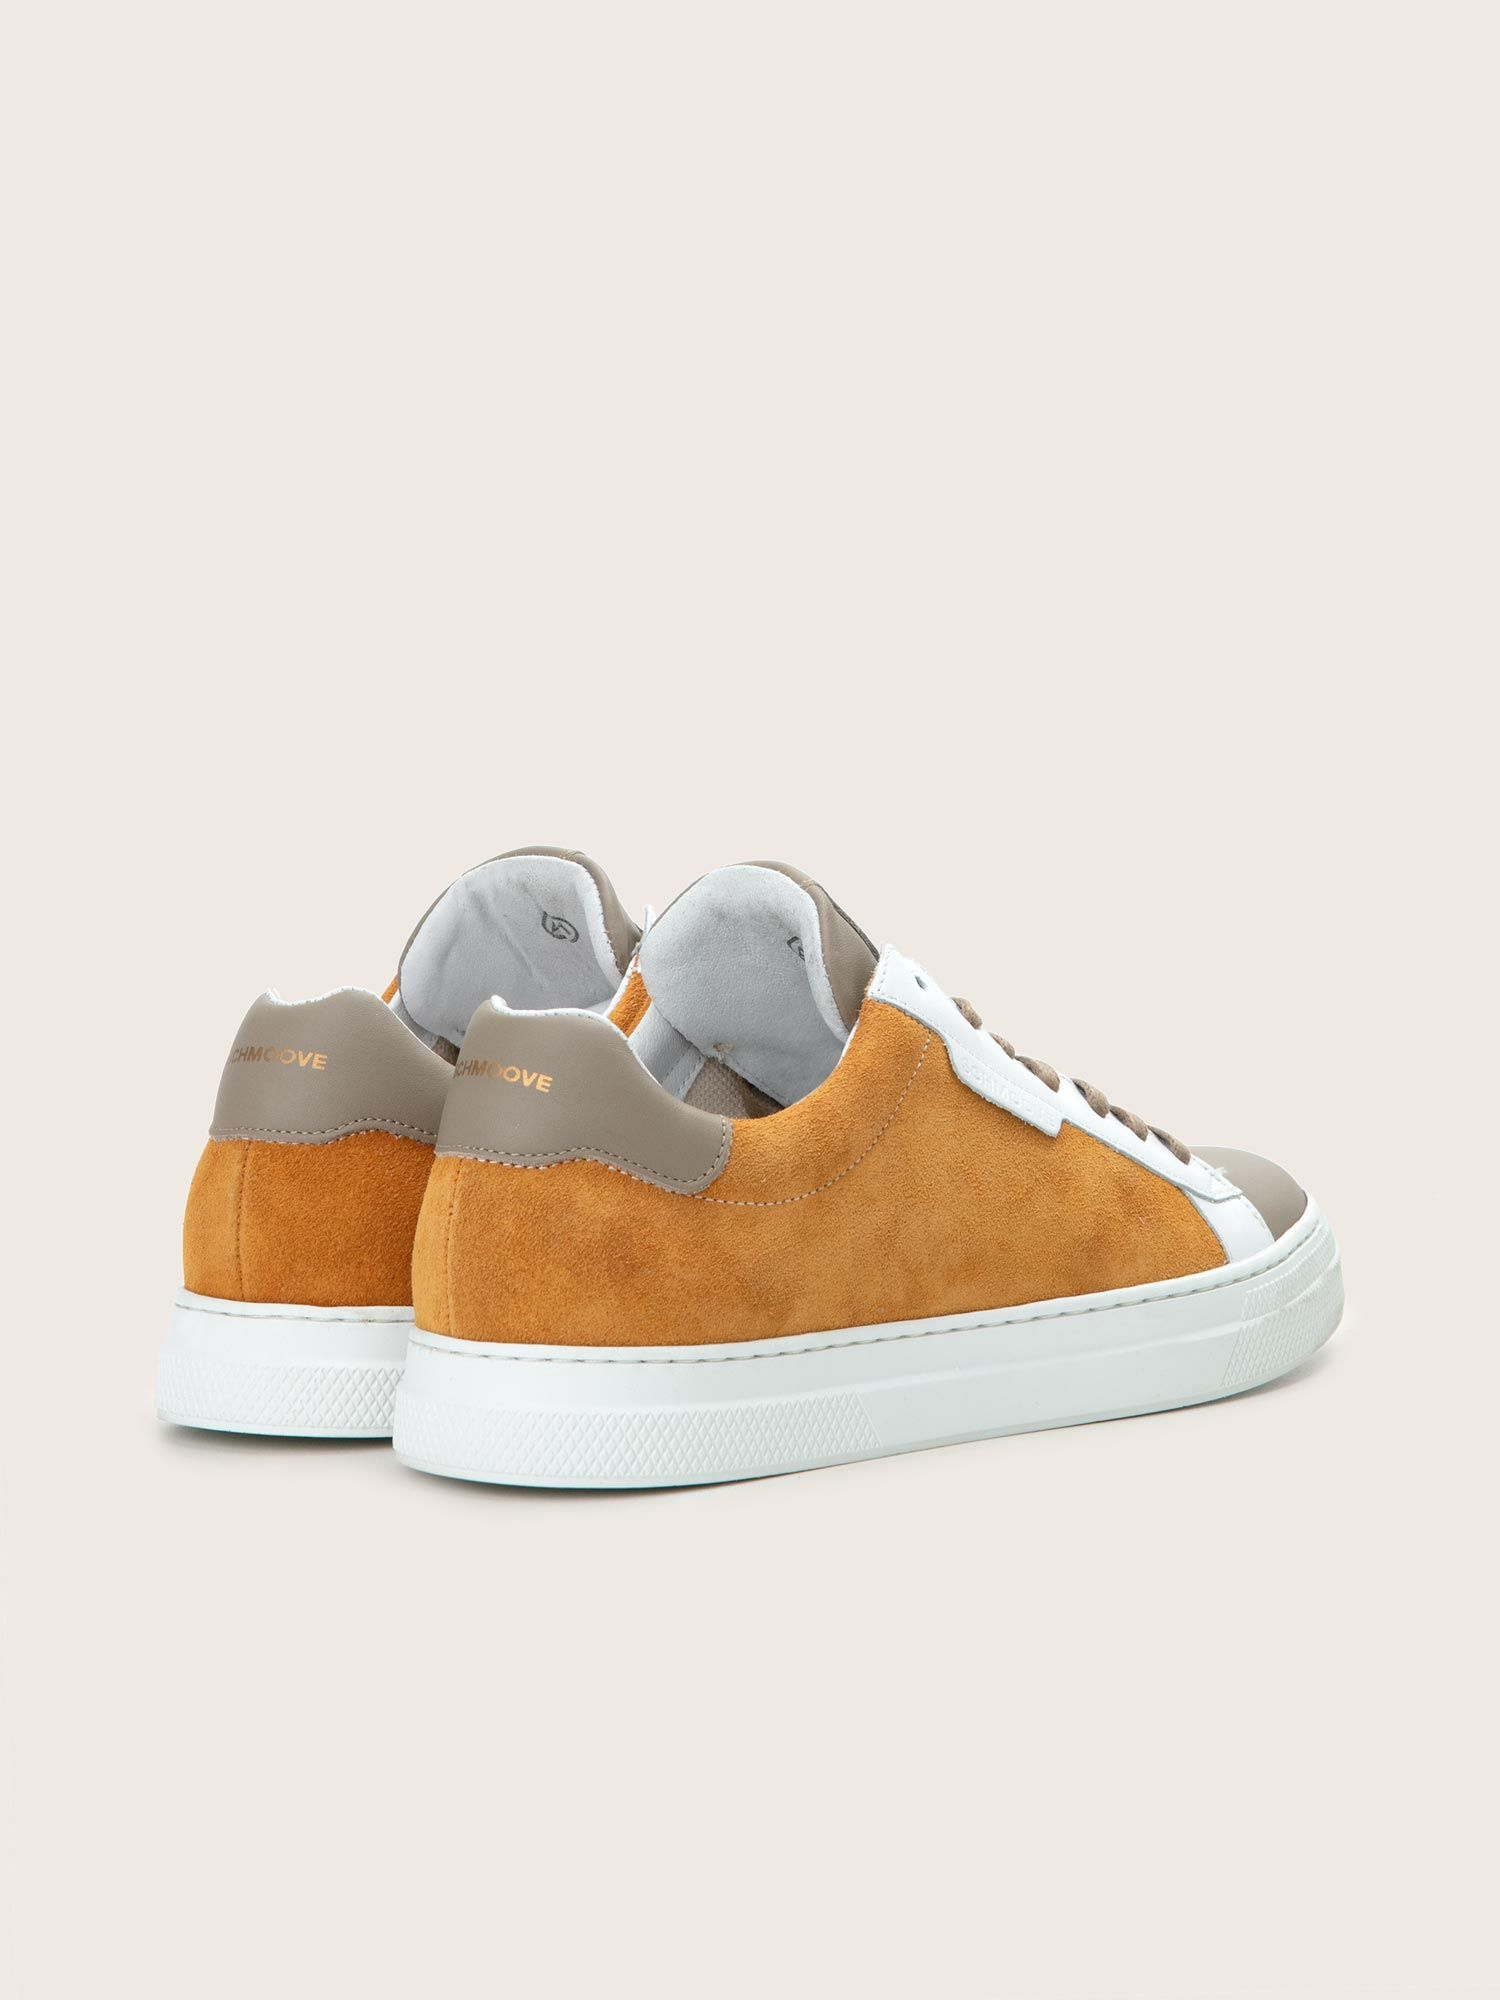 schmoove.fr Spark Clay - Suede/Nappa - Moutarde/Taupe